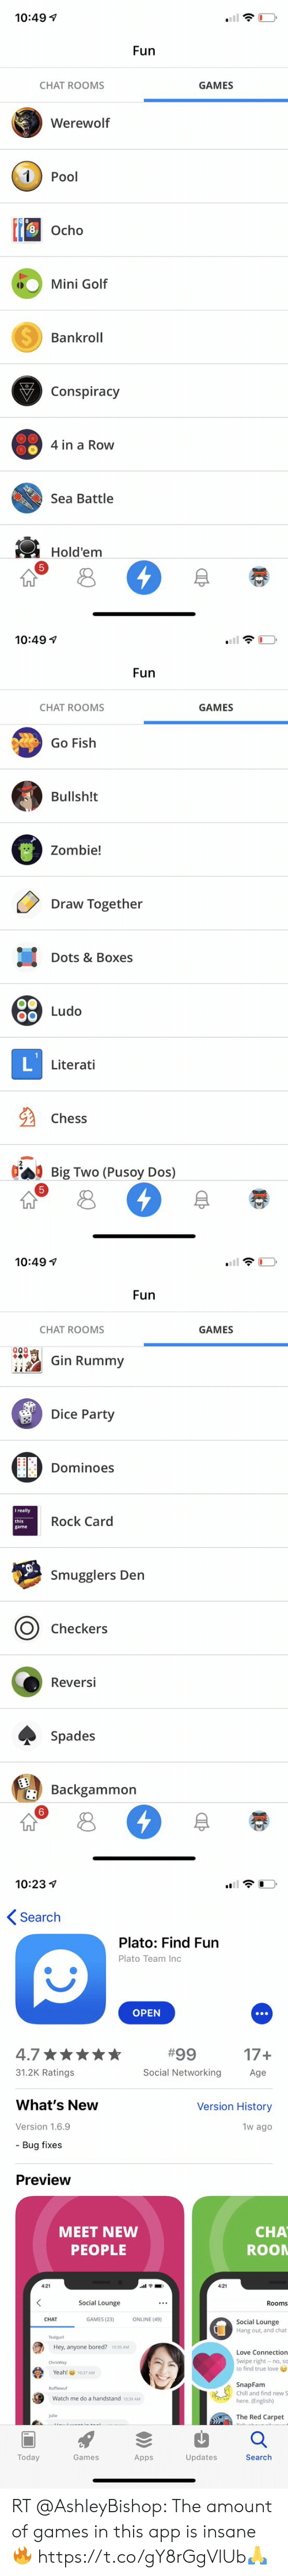 Bored, Chill, and Love: 10:491  Fun  CHAT ROOMS  GAMES  Werewolf  1Pool  Ocho  8  Mini Golf  Bankroll  Conspiracy  4 in a Row  Sea Battle  Hold'em  n8  阜荐   10:491  Fun  CHAT ROOMS  GAMES  Go Fish  Bullsh!t  땁  Zombie!  Draw Together  Dots & Boxes  oLudo  Literati  Chess  Big Two (Pusoy Dos)  n8  阜荐   10:491  Fun  CHAT ROOMS  GAMES  49# Gin Rummy  QQa  Dice Party  Dominoes  I really  this  game  Rock Card  Smugglers Den  O Checkers  Reversi  Spades  Backgammon  6   10:23  Search  Plato: Find Fun  Plato Team Inc  OPEN  4.7  31.2K Ratings  17+  Age  #99  Social Networking  What's New  Version 1.6.9  - Bug fixes  Version History  w ago  Preview  CHA  ROON  MEET NEW  PEOPLE  4:21  4:21  Social Lounge  Rooms  CHAT  GAMES (23)  ONLINE (49)  Social Lounge  Hang out, and chat  Tealgurl  Hey, anyone bored? 103S AM  ChrisWay  Love Connection  Swipe right no, sa  to find true love  Yeah!  10:37 AM  SnapFam  Chill and find new S  here. (English)  Ruffiewuf  Watch me do a handstand 10:39 AM  Julie  The Red Carpet  Today  Games  Apps  Updates  Search RT @AshIeyBishop: The amount of games in this app is insane 🔥 https://t.co/gY8rGgVlUb🙏